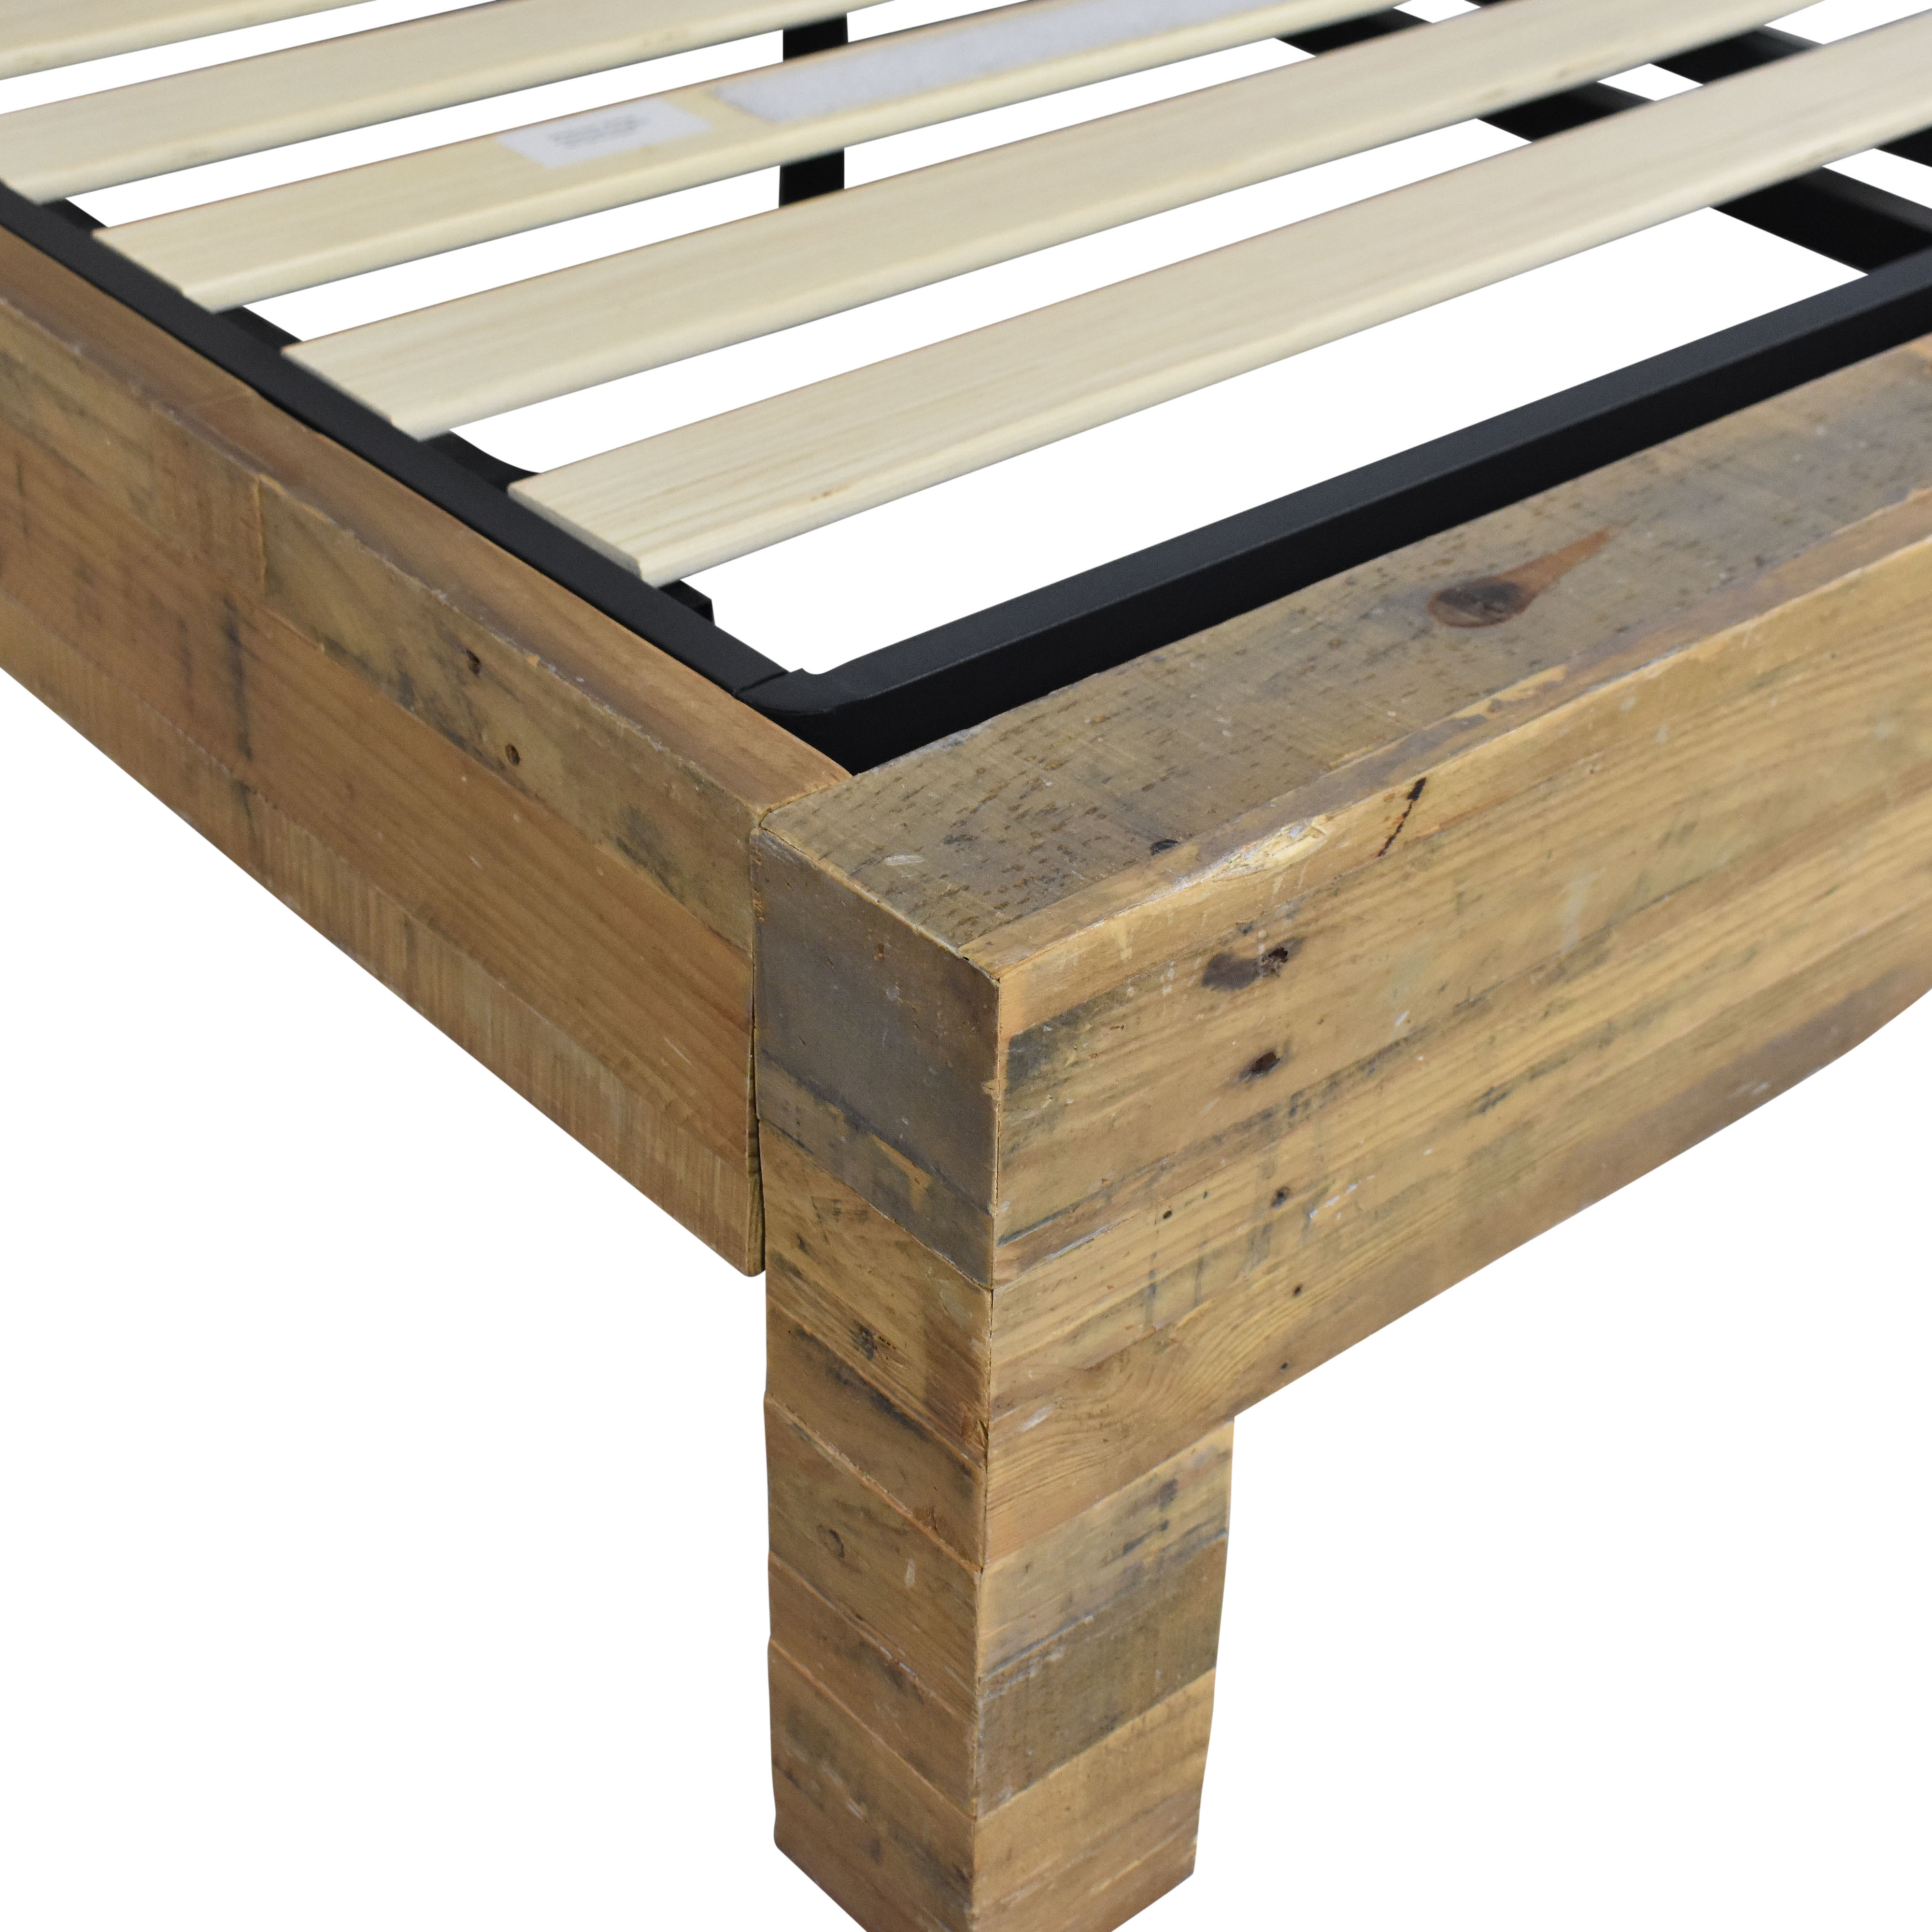 West Elm West Elm Emmerson Reclaimed Wood Queen Bed dimensions